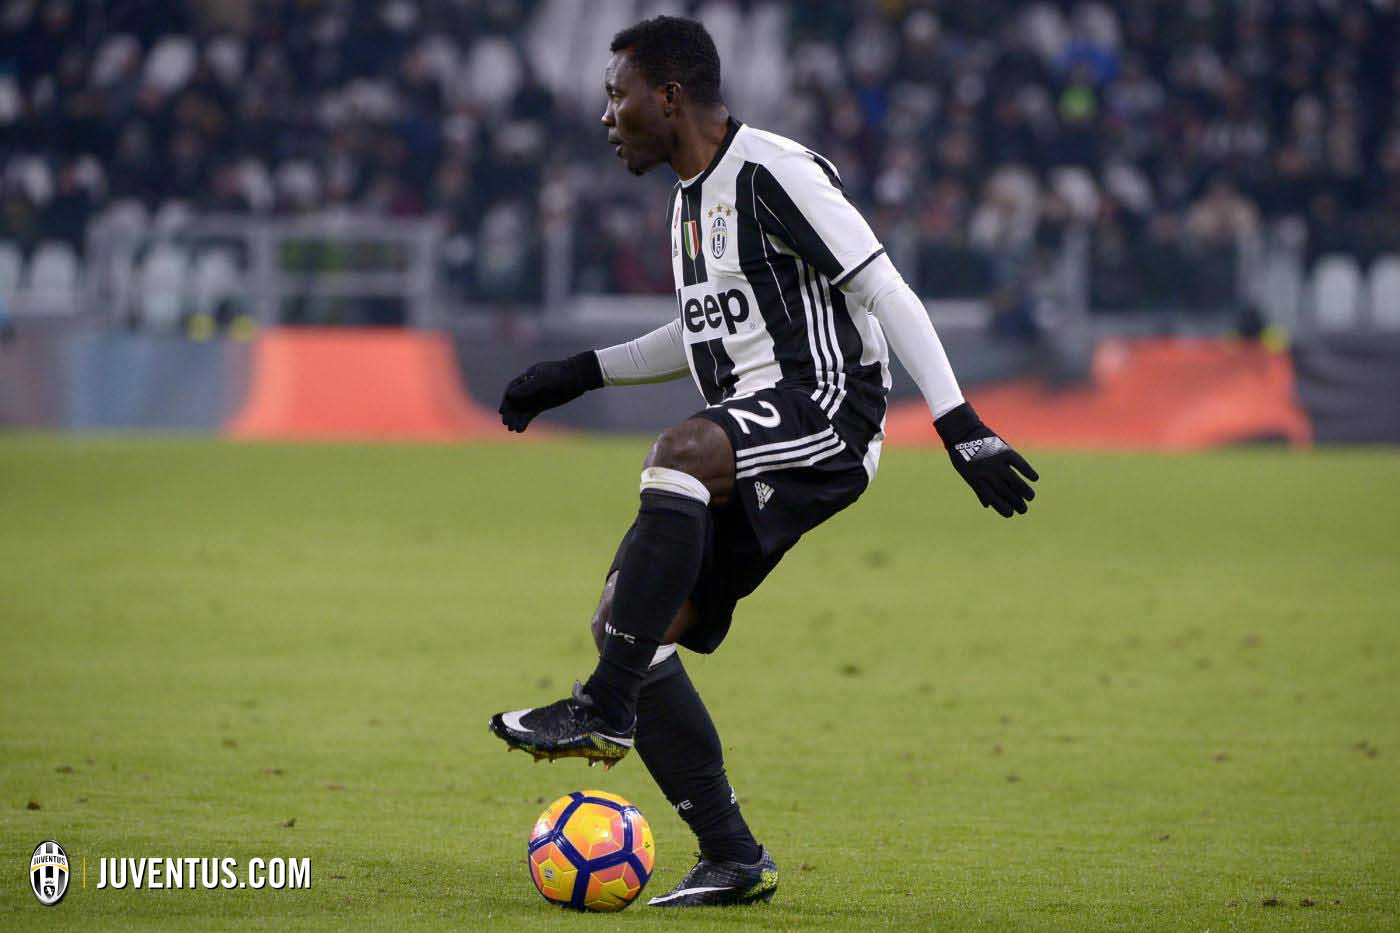 Kwadwo Asamoah plays first petitive match for Juventus after